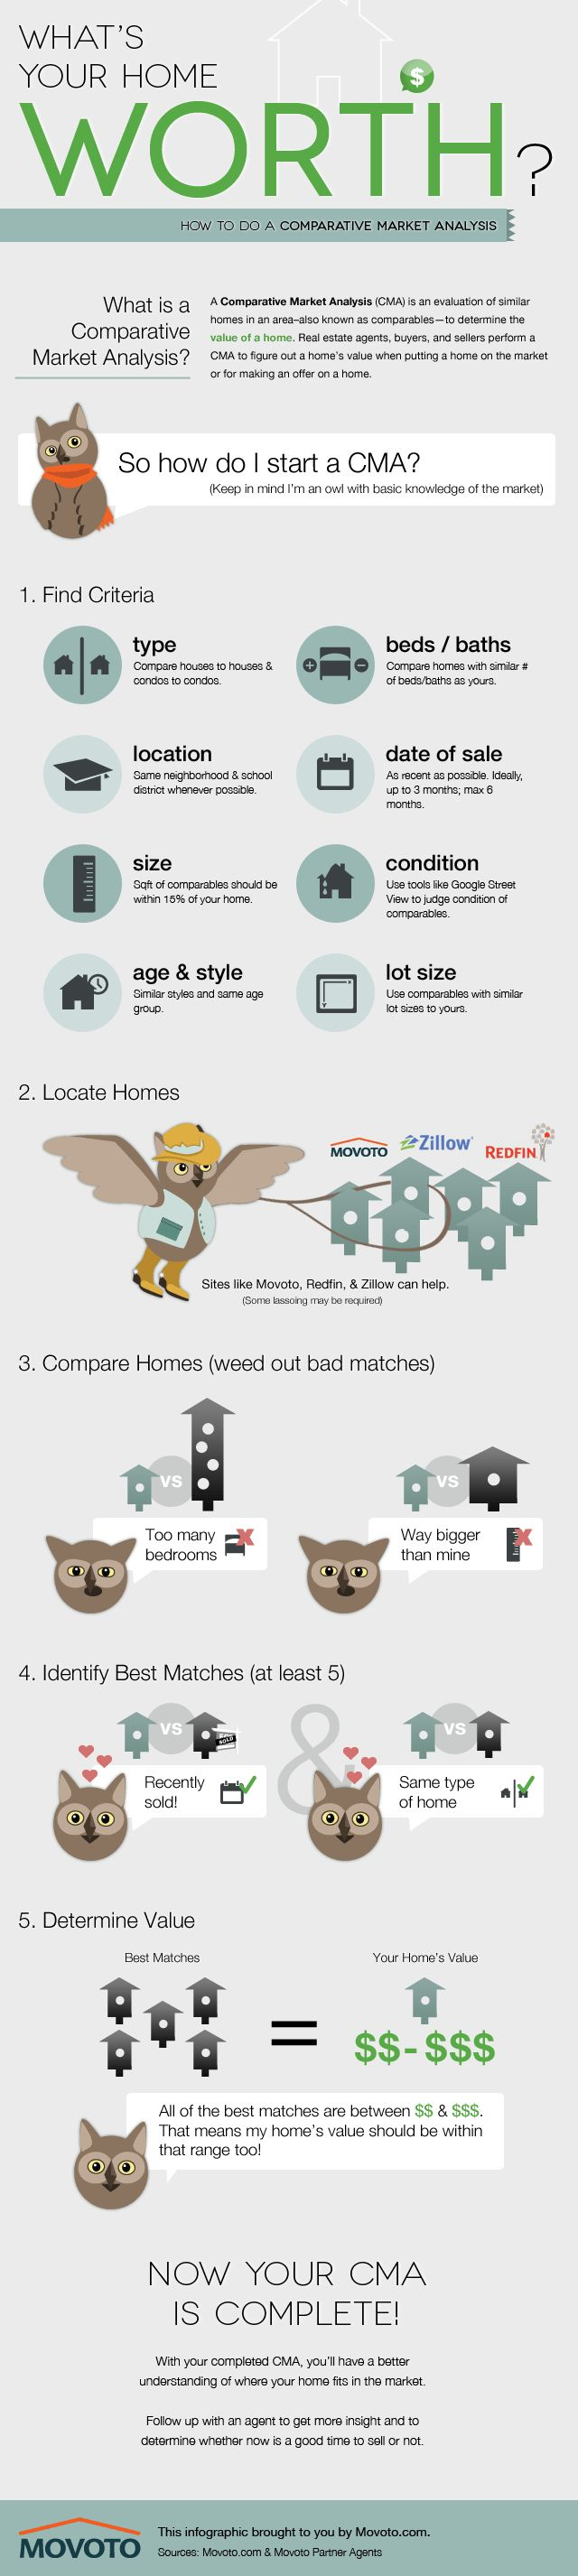 Movoto Real Estate did an infographic about the Comparative Market Analysis procedure in order to make the process easier to understand. Call your #Chicago Local expert to get an updated #CMA, www.markilemons.com